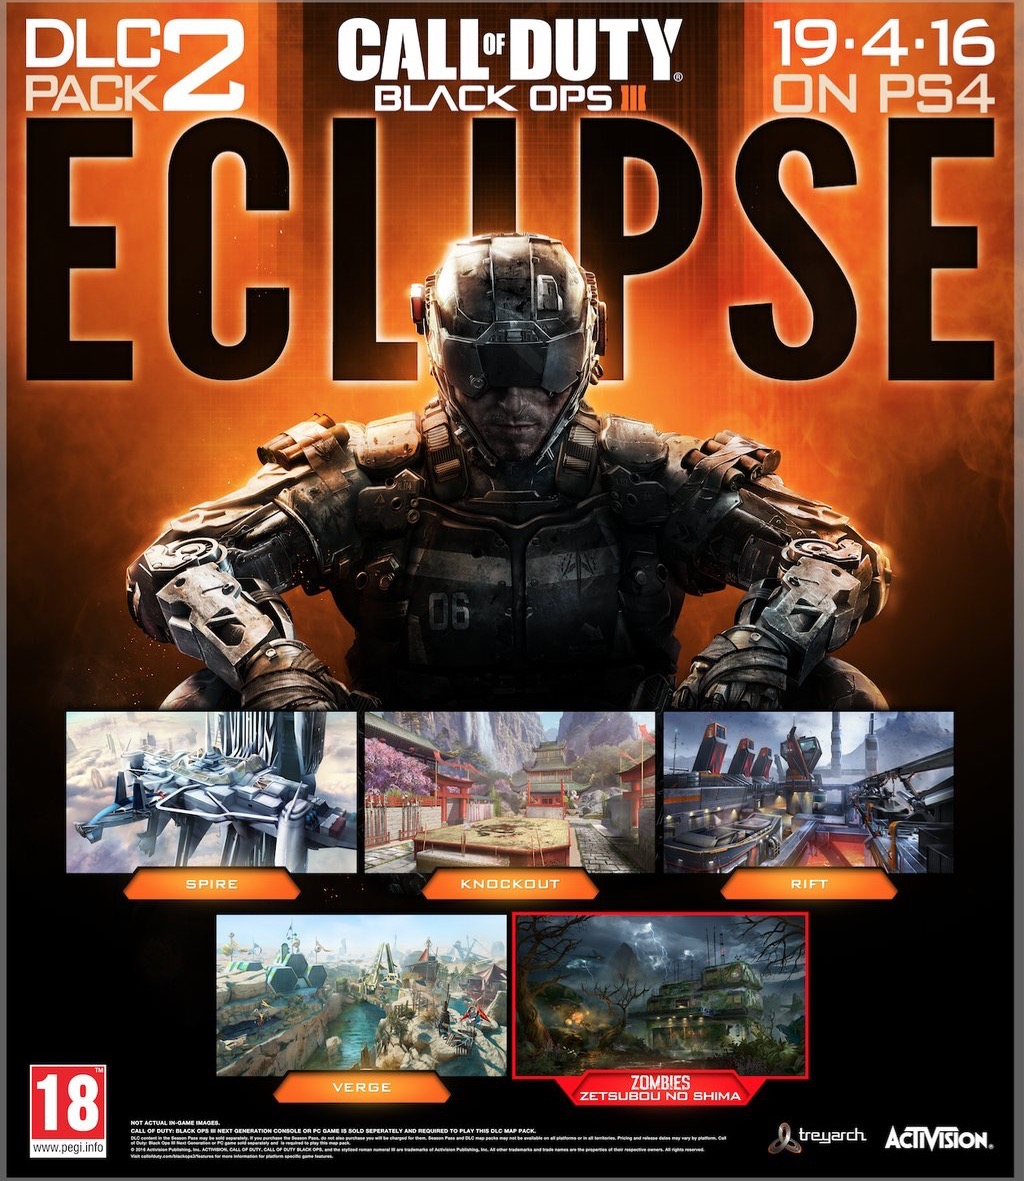 Eclipse-DLC_2-Black-Ops-3